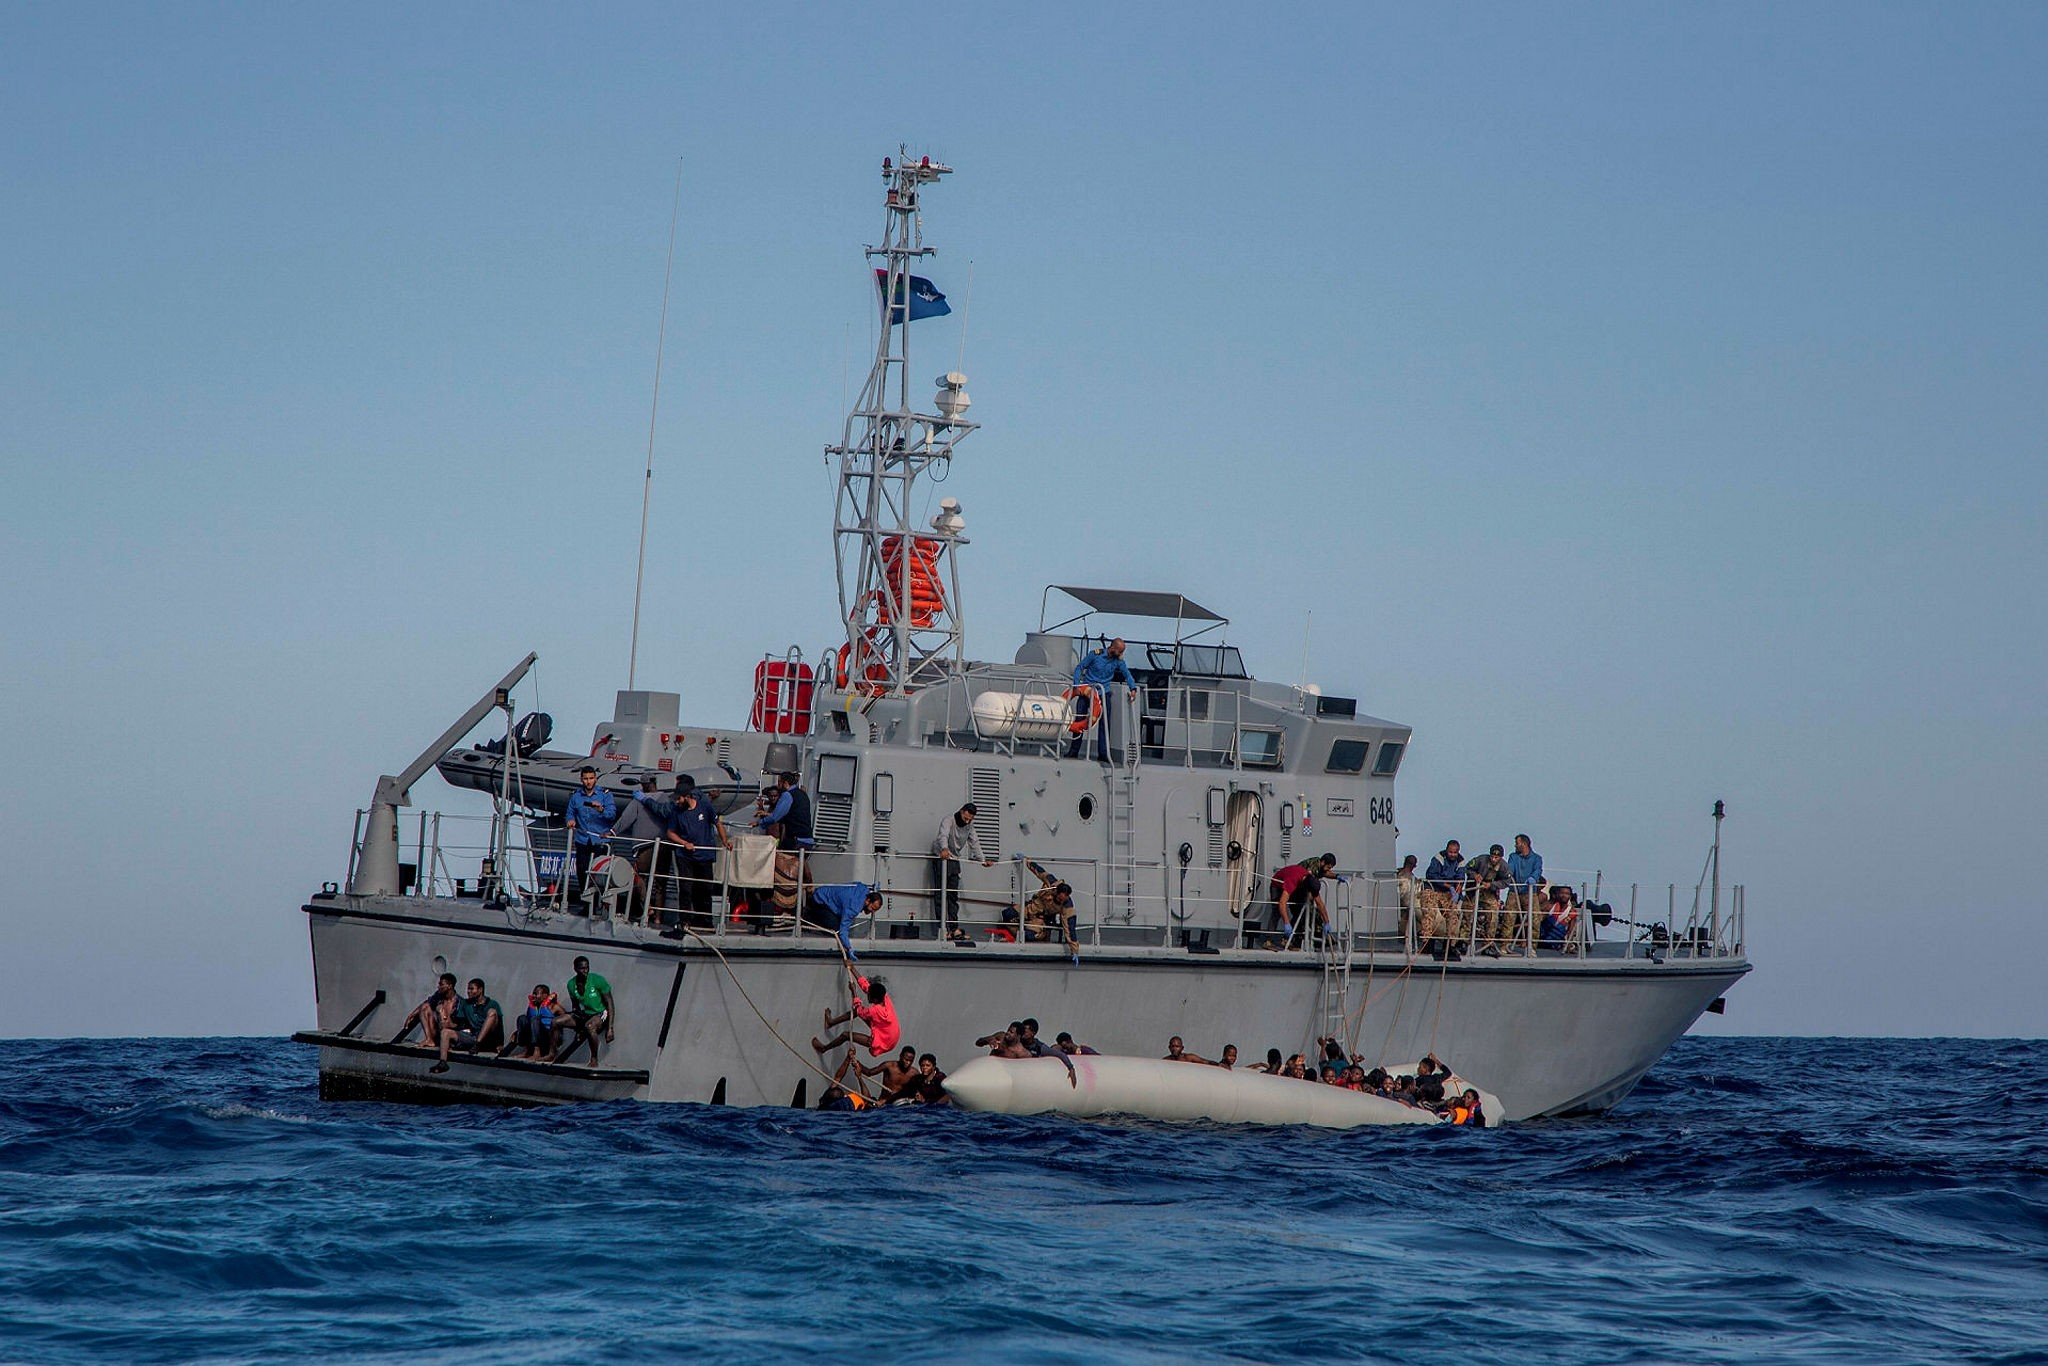 The Libyan coast guard tries to recover migrants from a rubber raft on the Mediterranean Sea, Nov. 6.